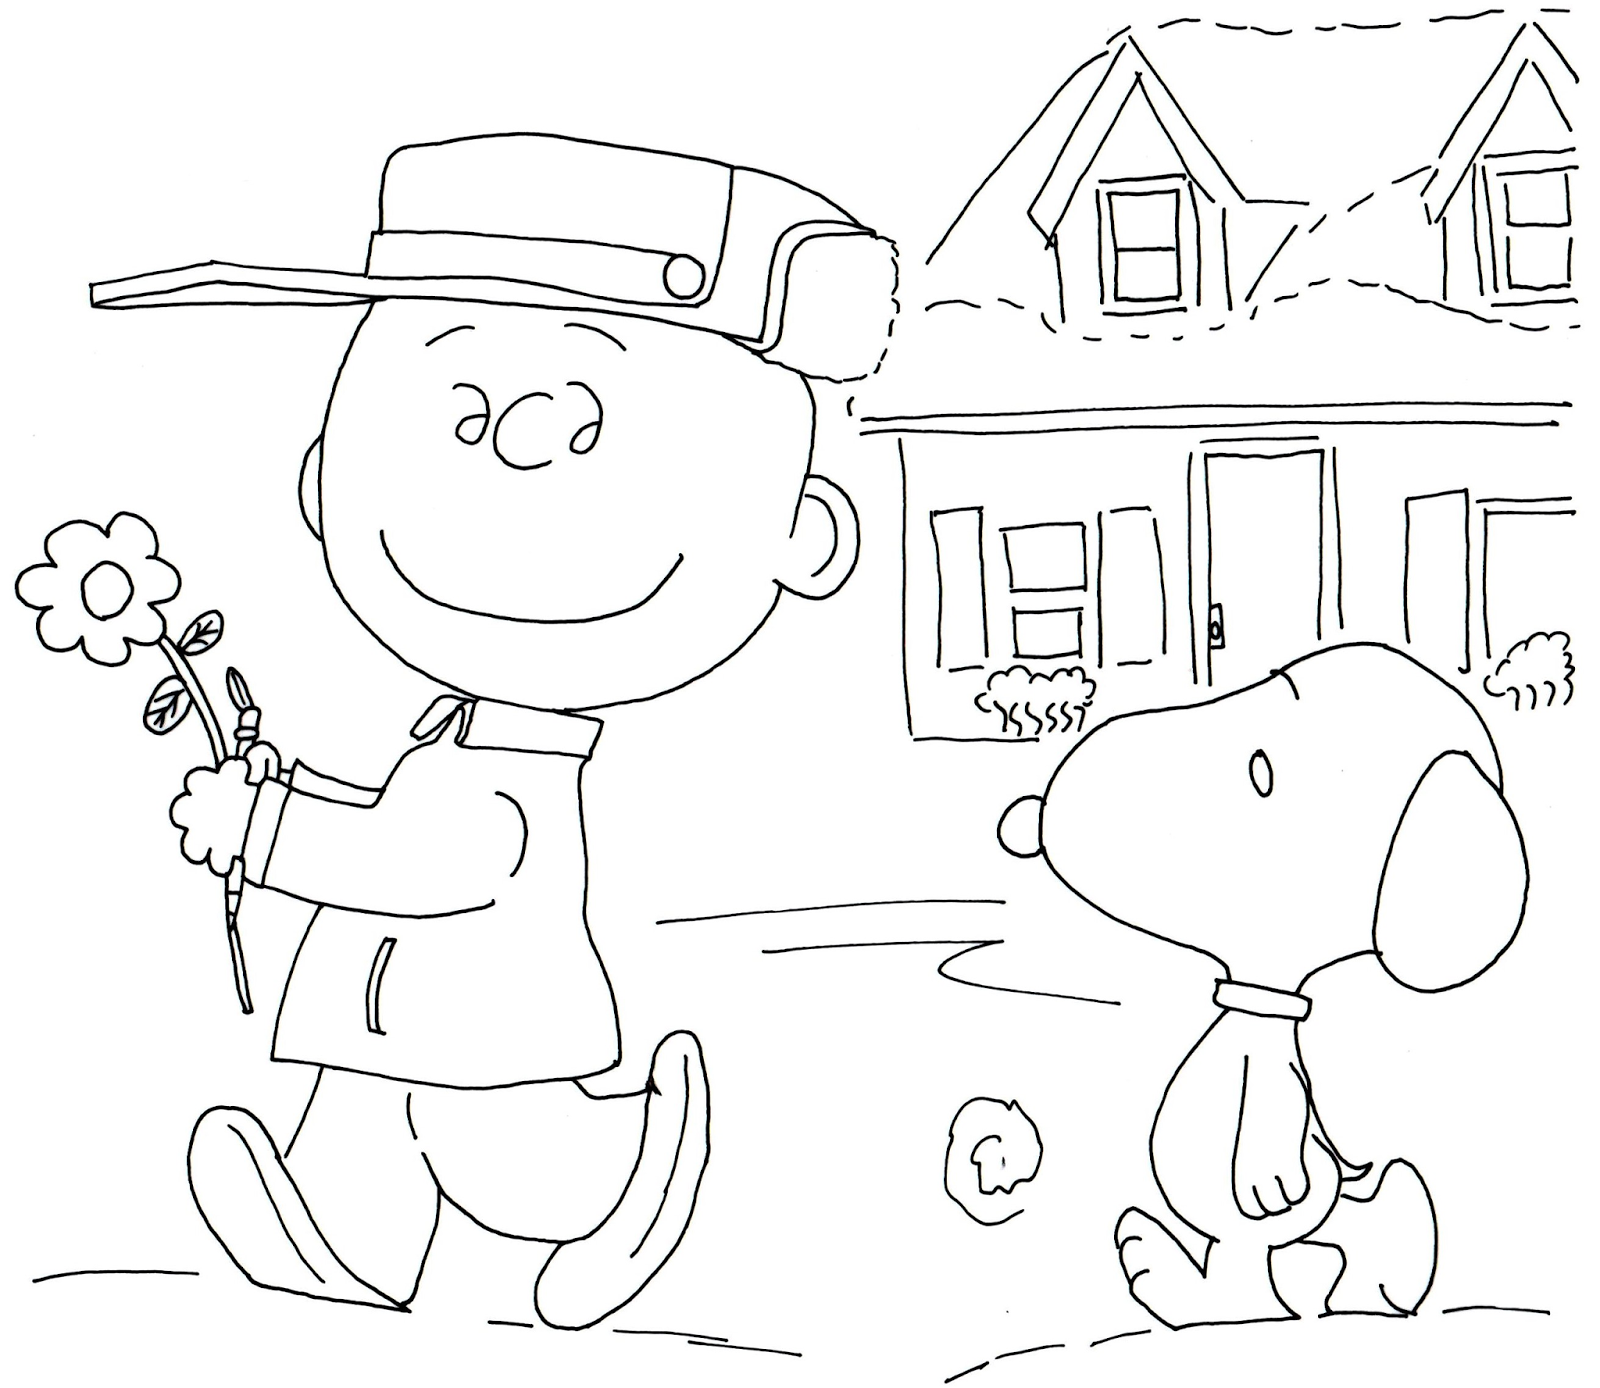 1600x1388 Free Charlie Brown Snoopy And Peanuts Coloring Pages Free Charlie